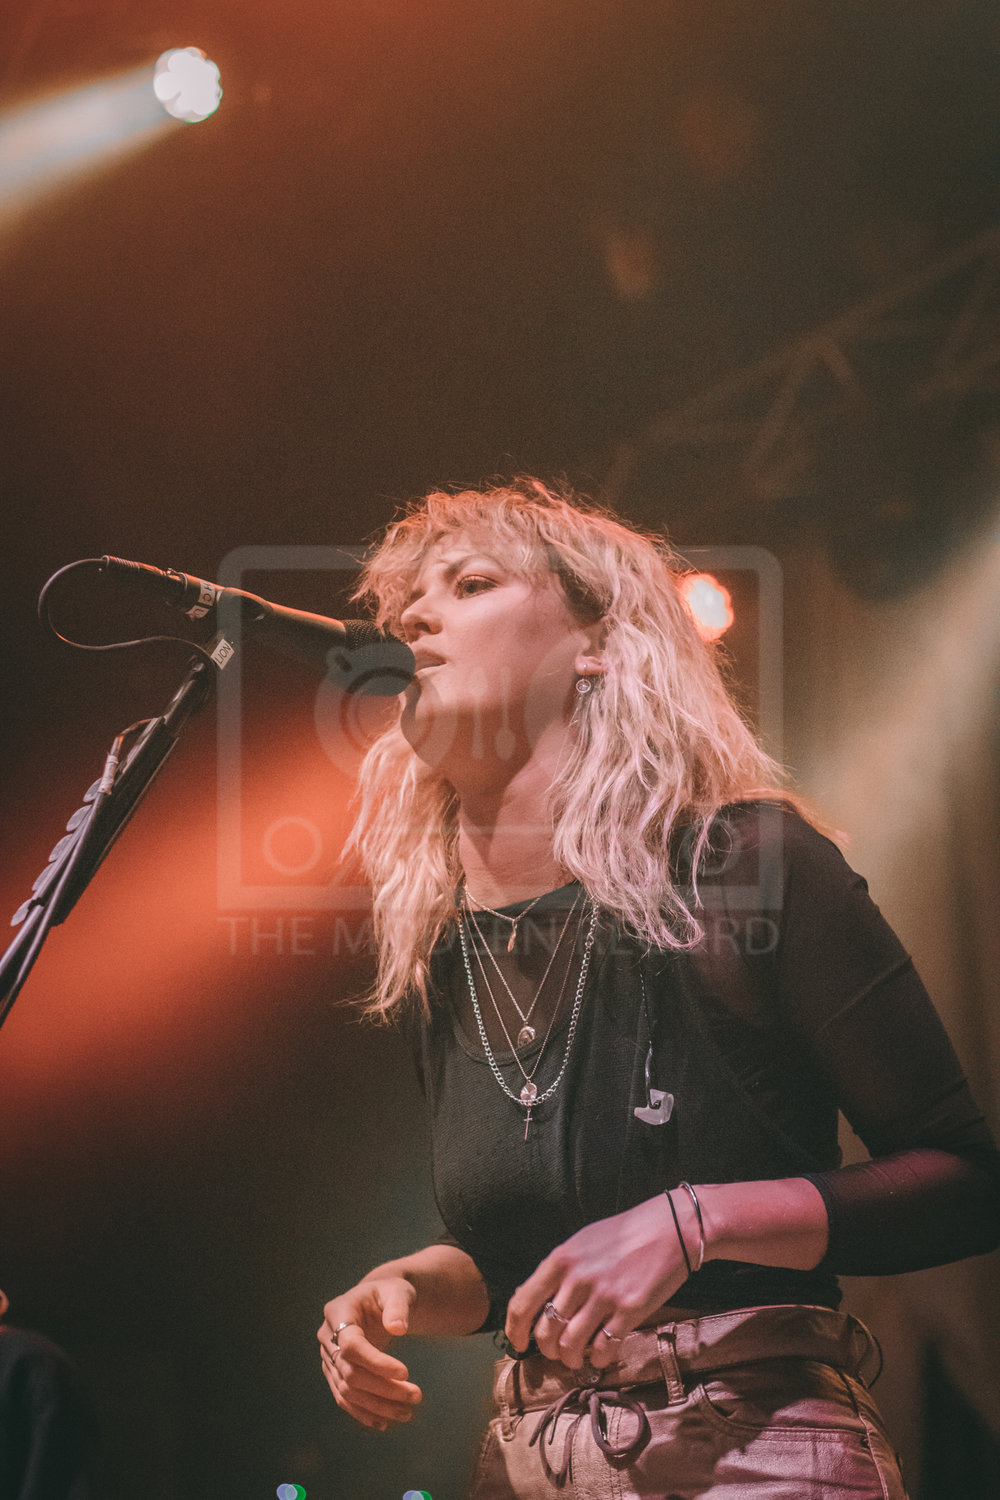 1 - Lion (support) - O2 Academy, Newcastle - 21-01-19 Picture by Will Gorman Photo.JPG